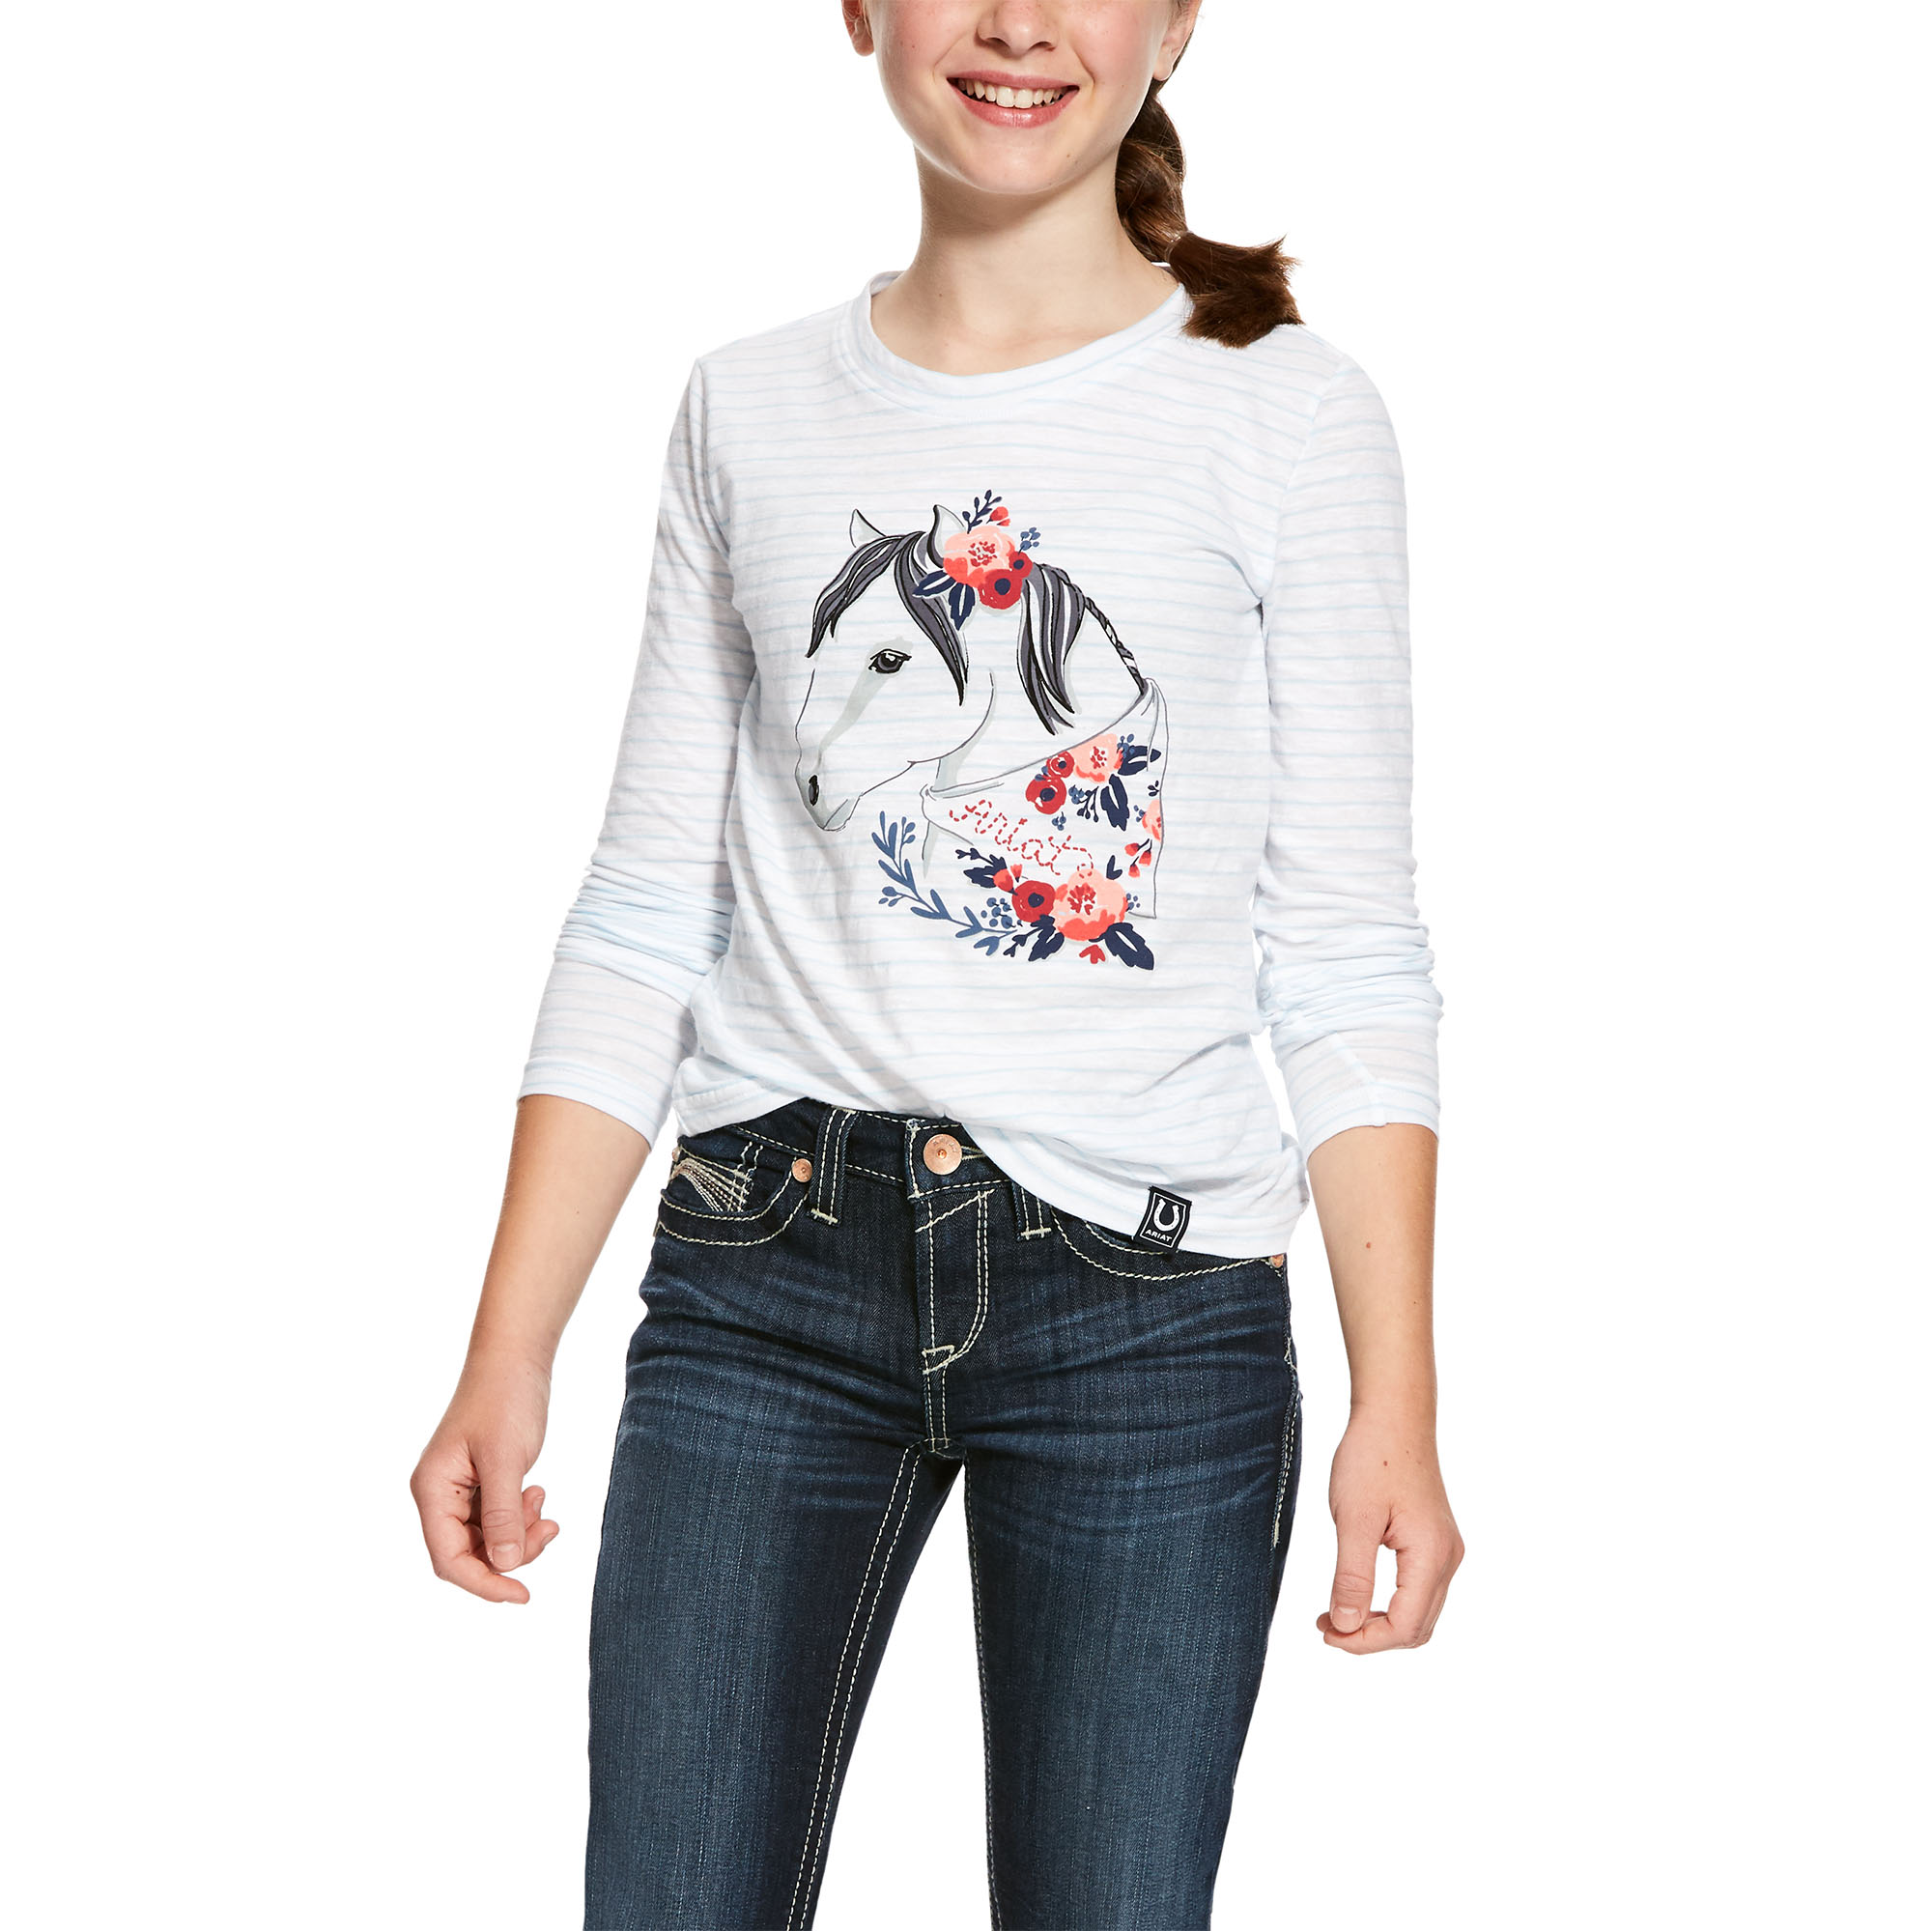 Ariat Girls Boho Pony Long Sleeve Tee